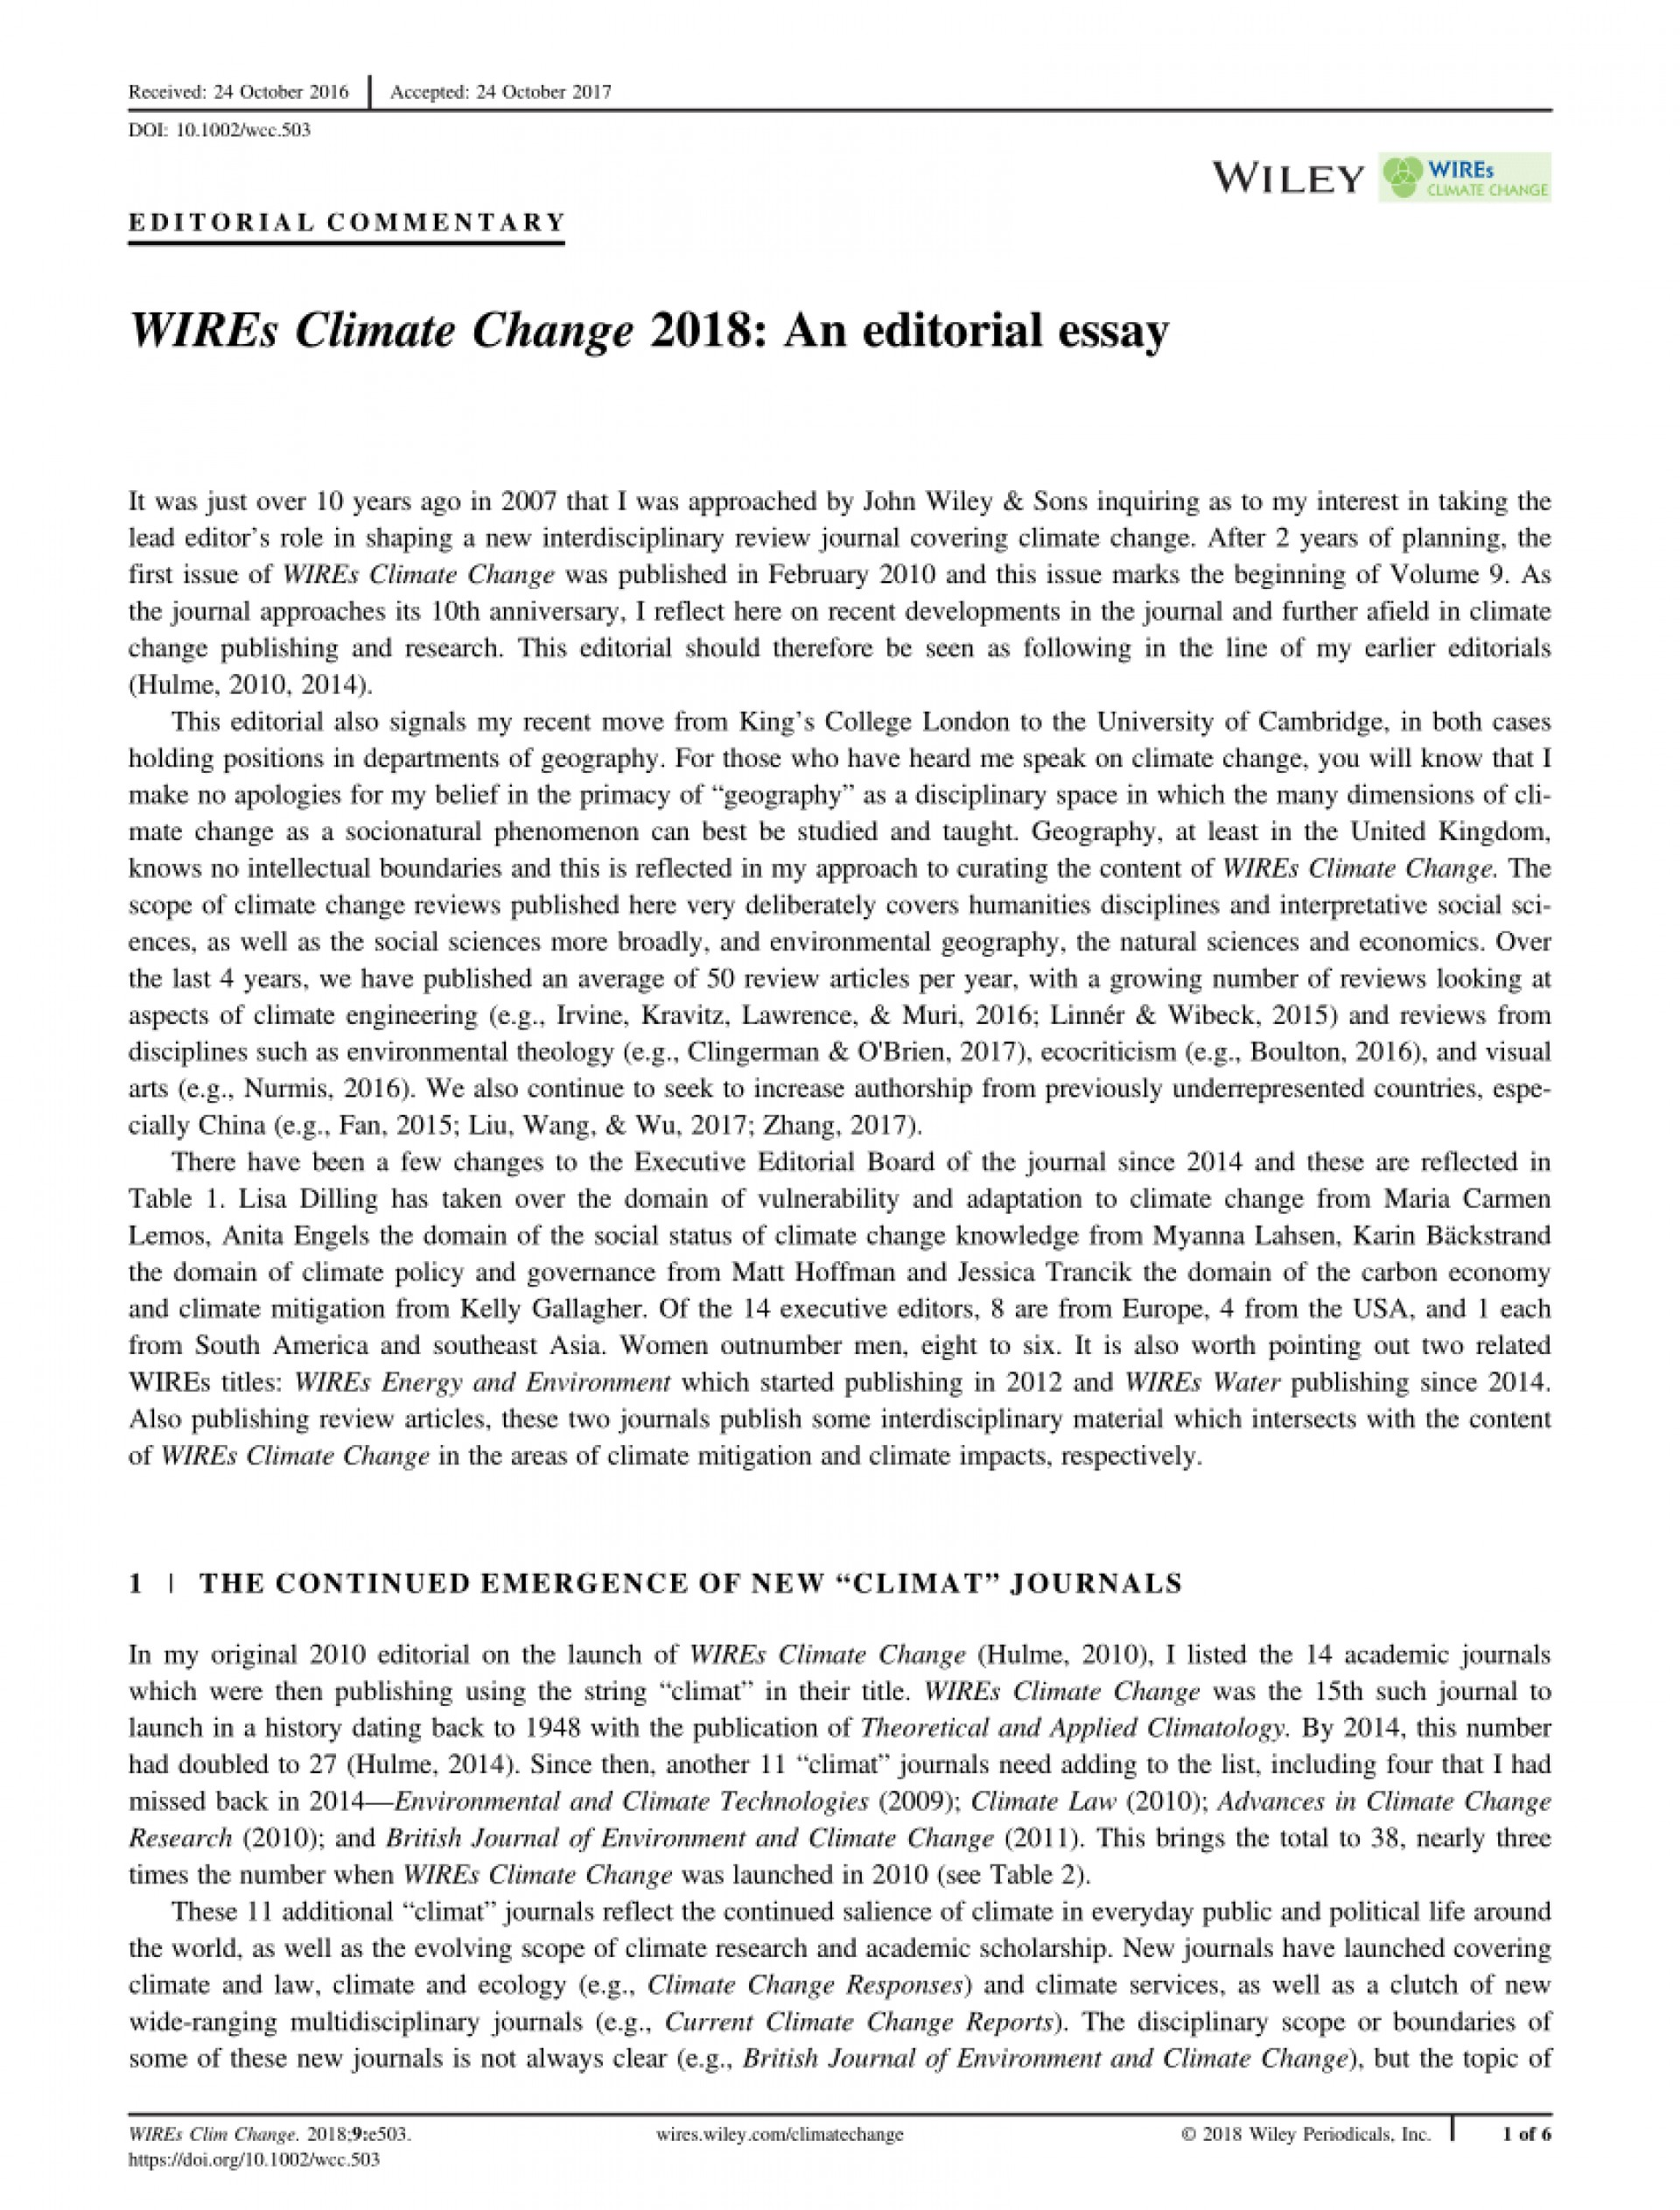 005 Essay Example Climate Change Awesome High School In English 150 Words Kenya Art And Competition 2018 1920